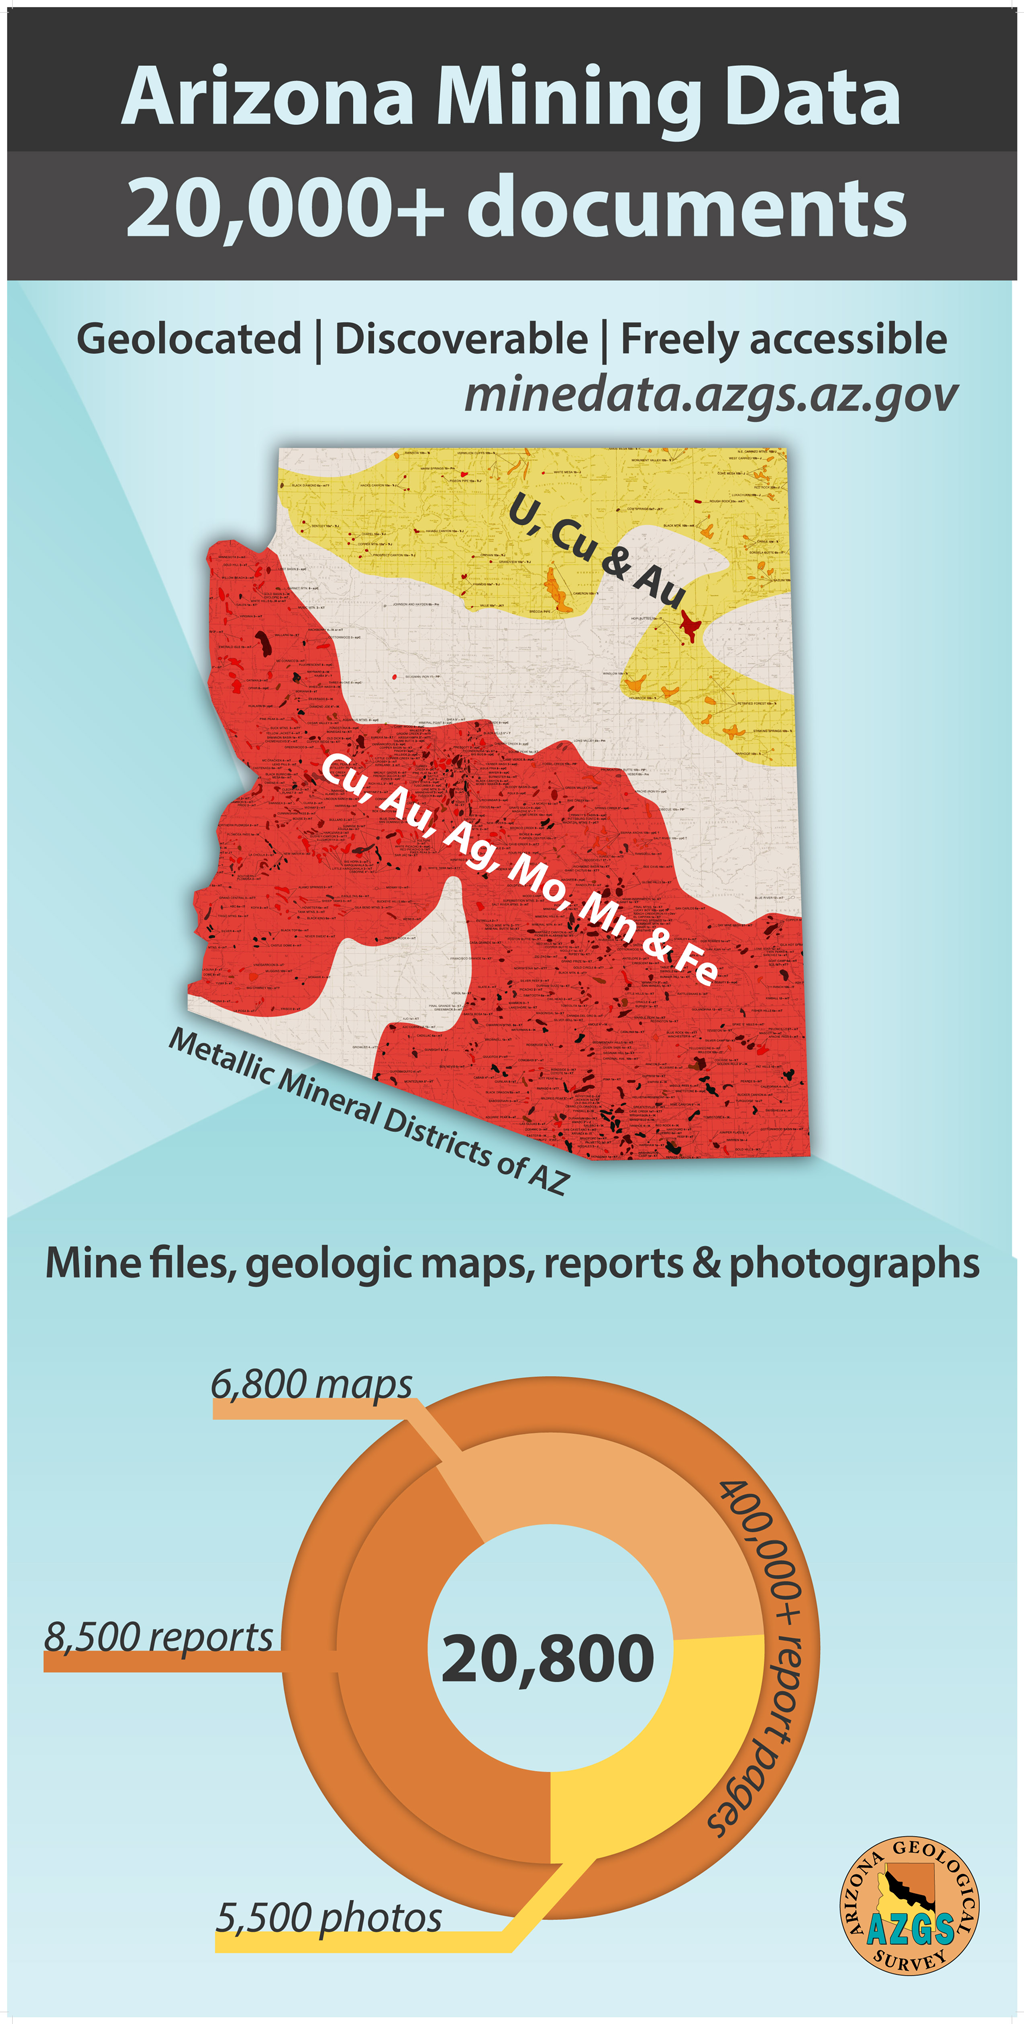 Figure 3. AZGS Mining Data website: 400,000 pages of largely unpublished mine data – georeferenced, discoverable and accessible free at http://minedata.azgs.az.gov/